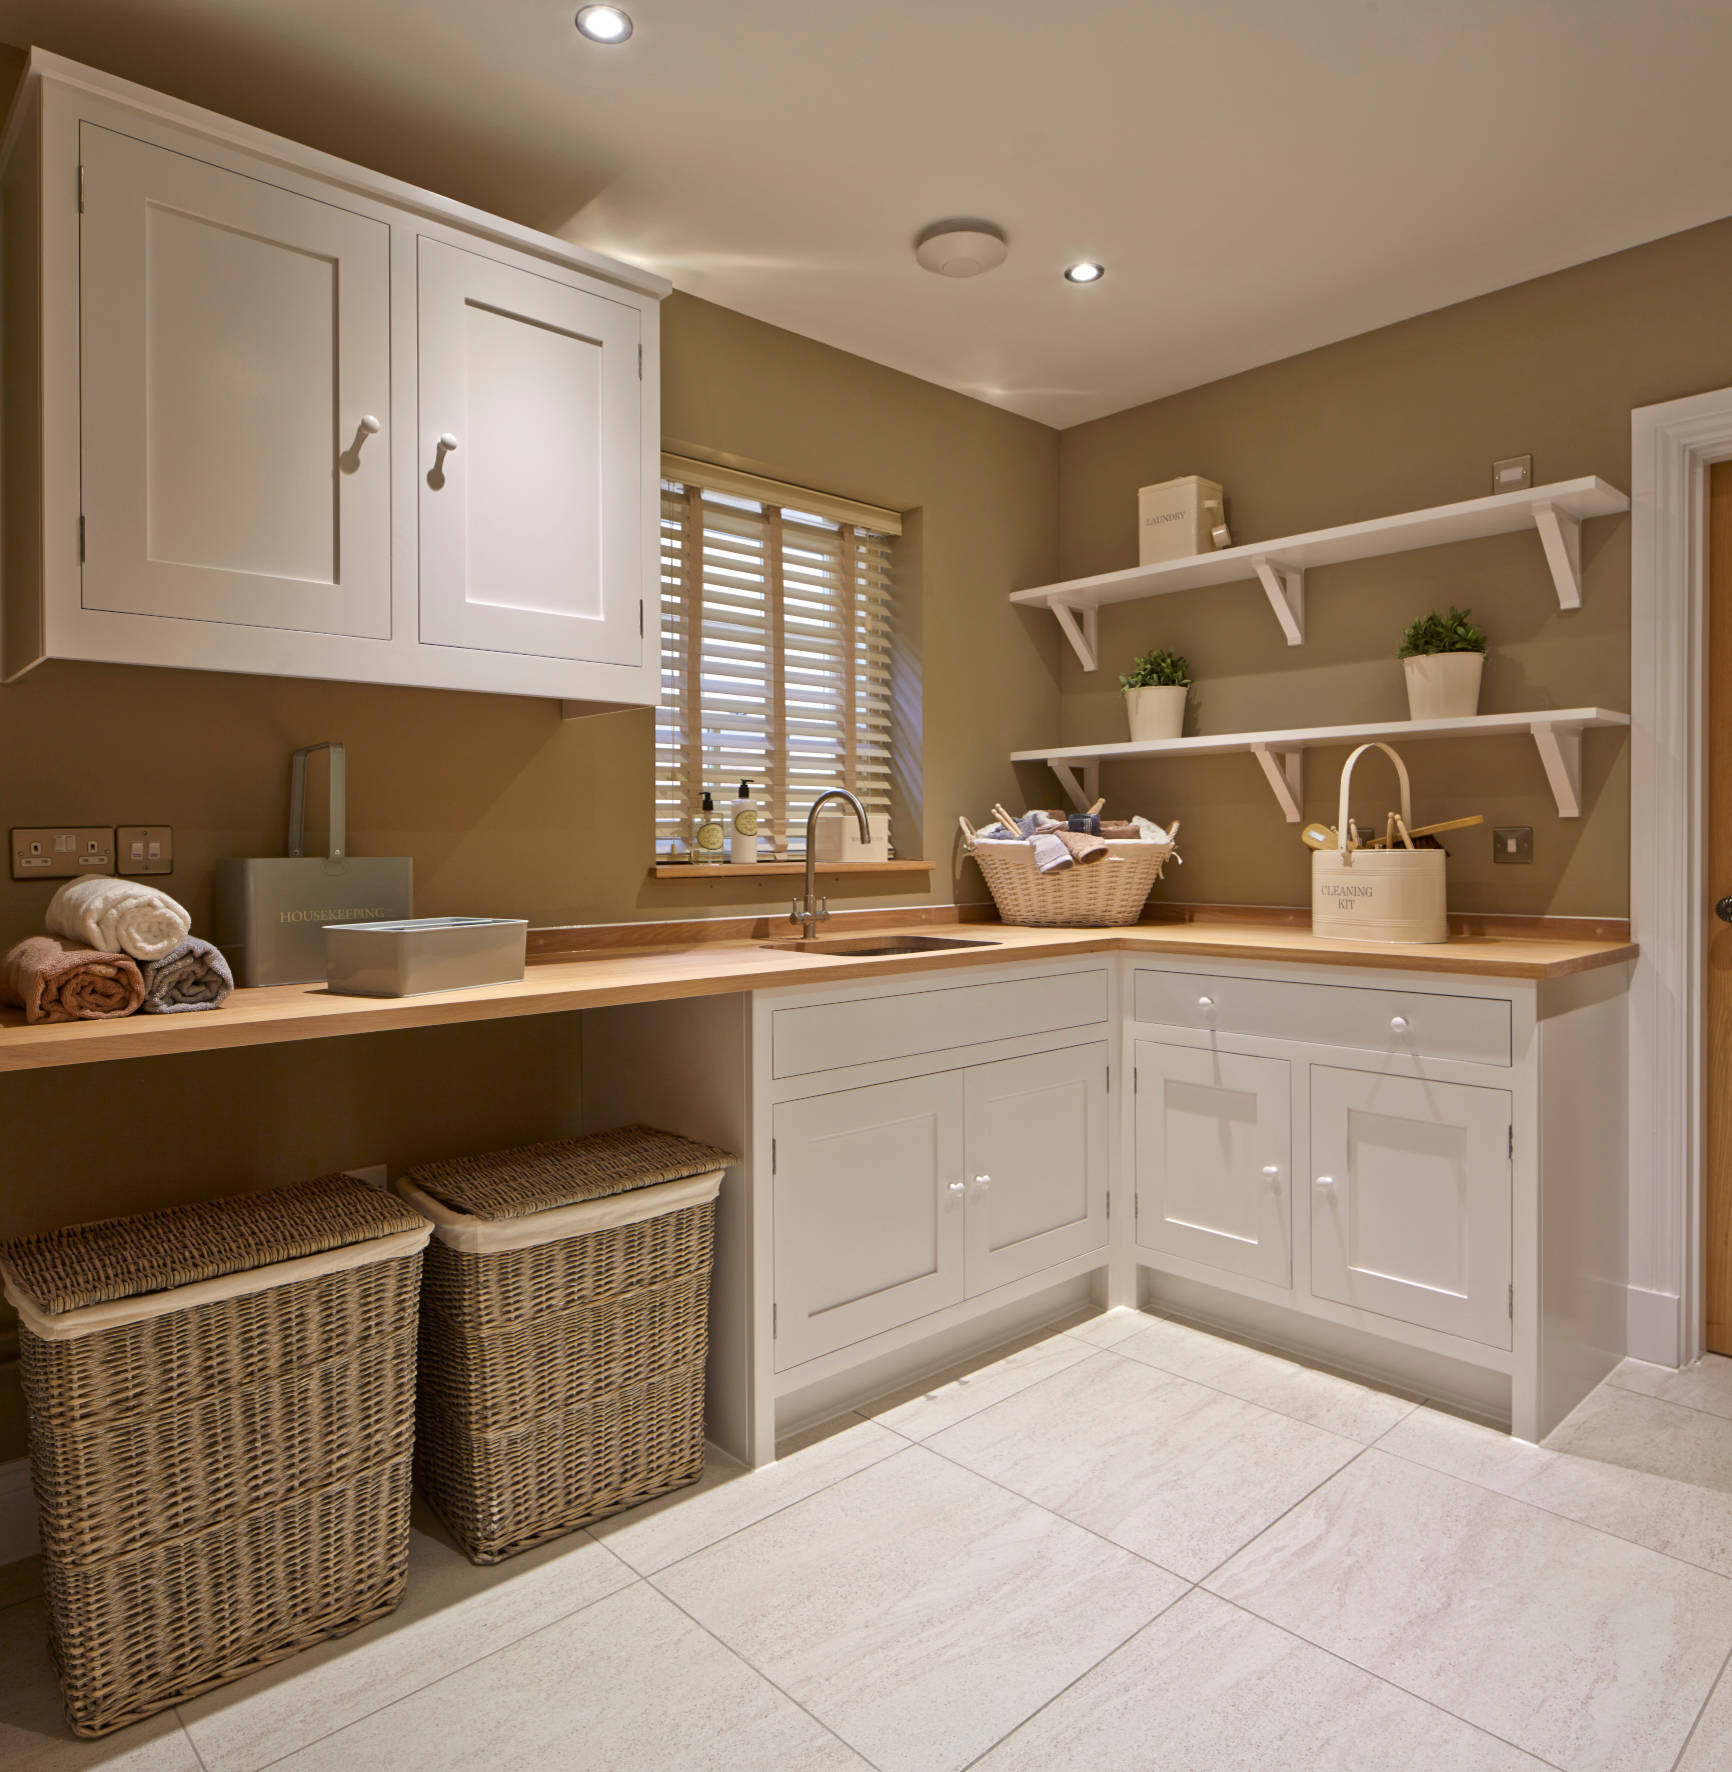 75 Beautiful Laundry Room With Wood Countertops Pictures Ideas December 2020 Houzz